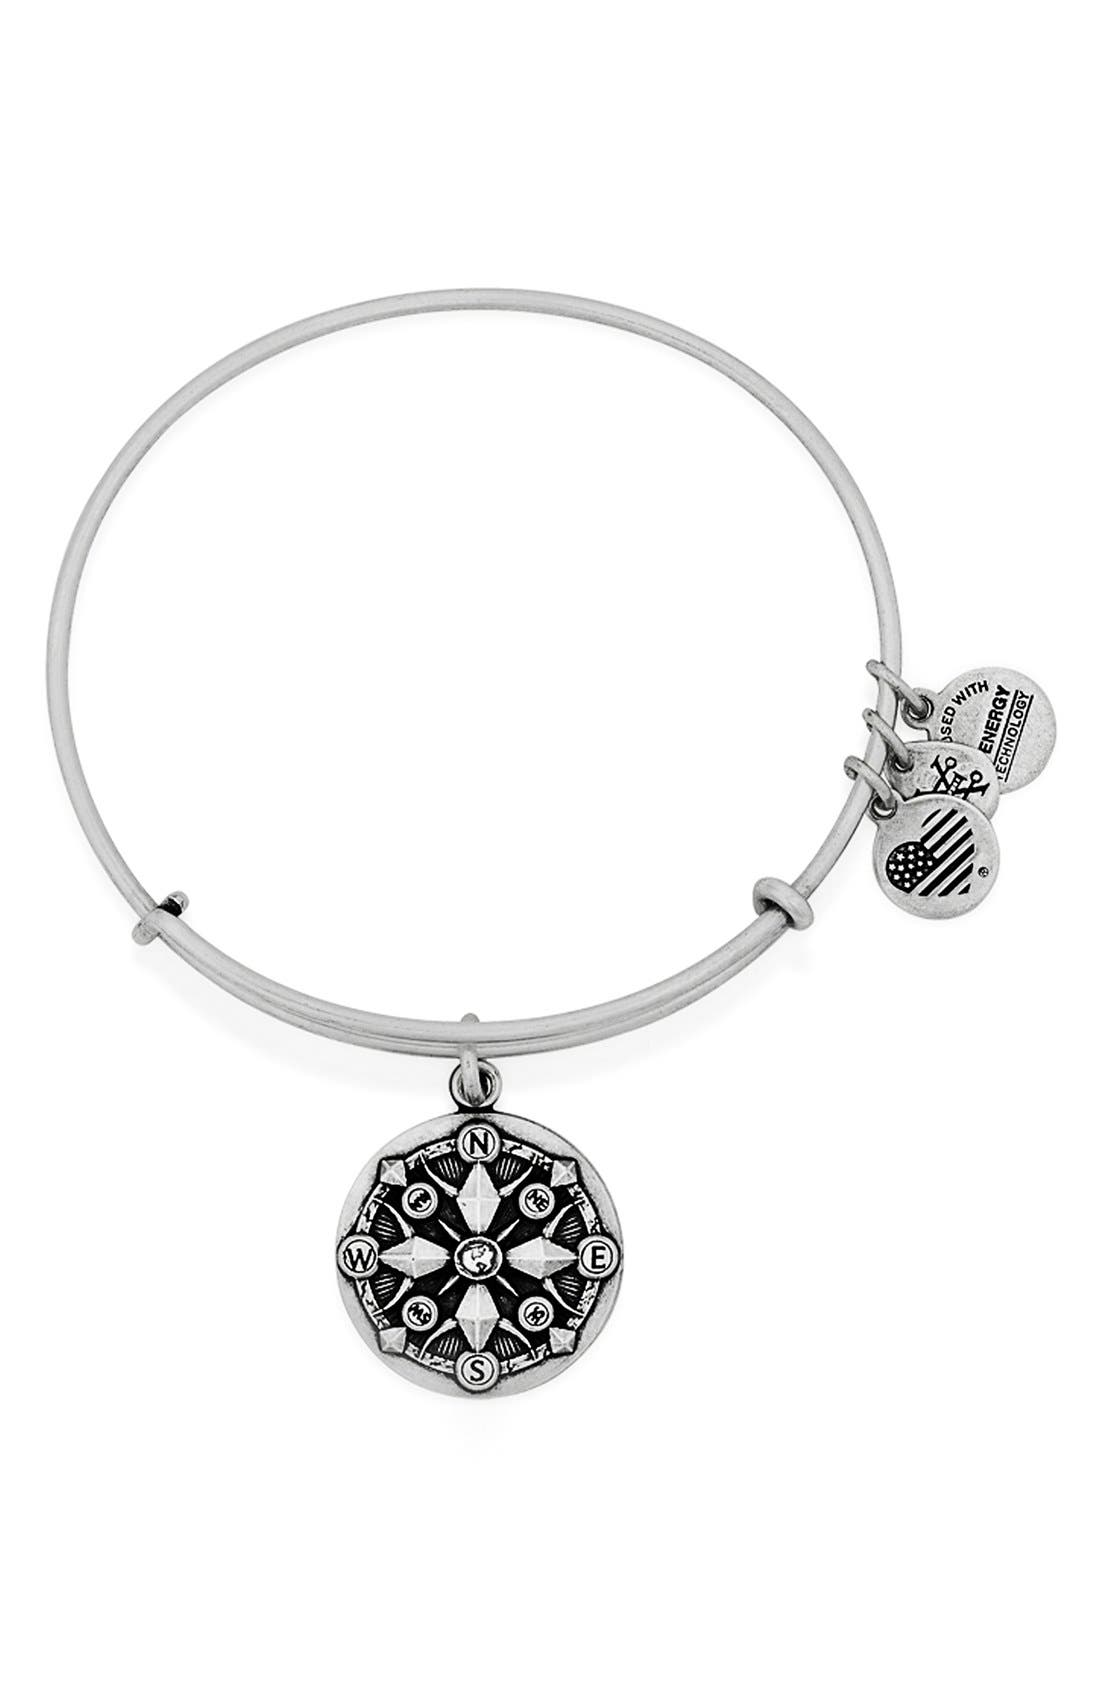 Main Image - Alex and Ani 'Compass' Adjustable Wire Bangle